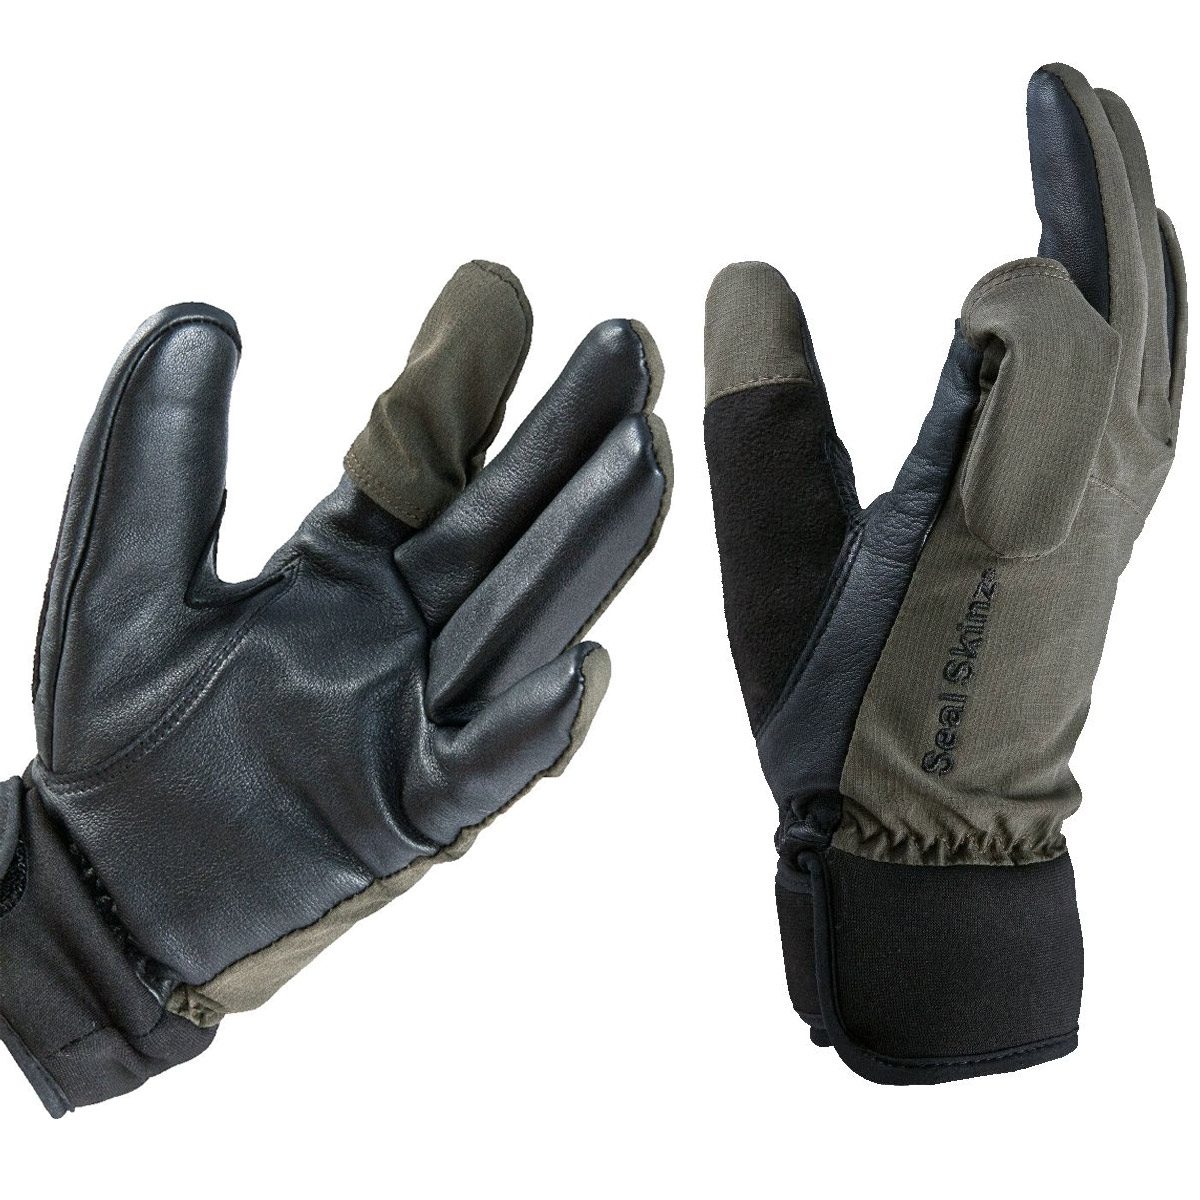 Ladies leather shooting gloves - Sealskinz Shooting Glove